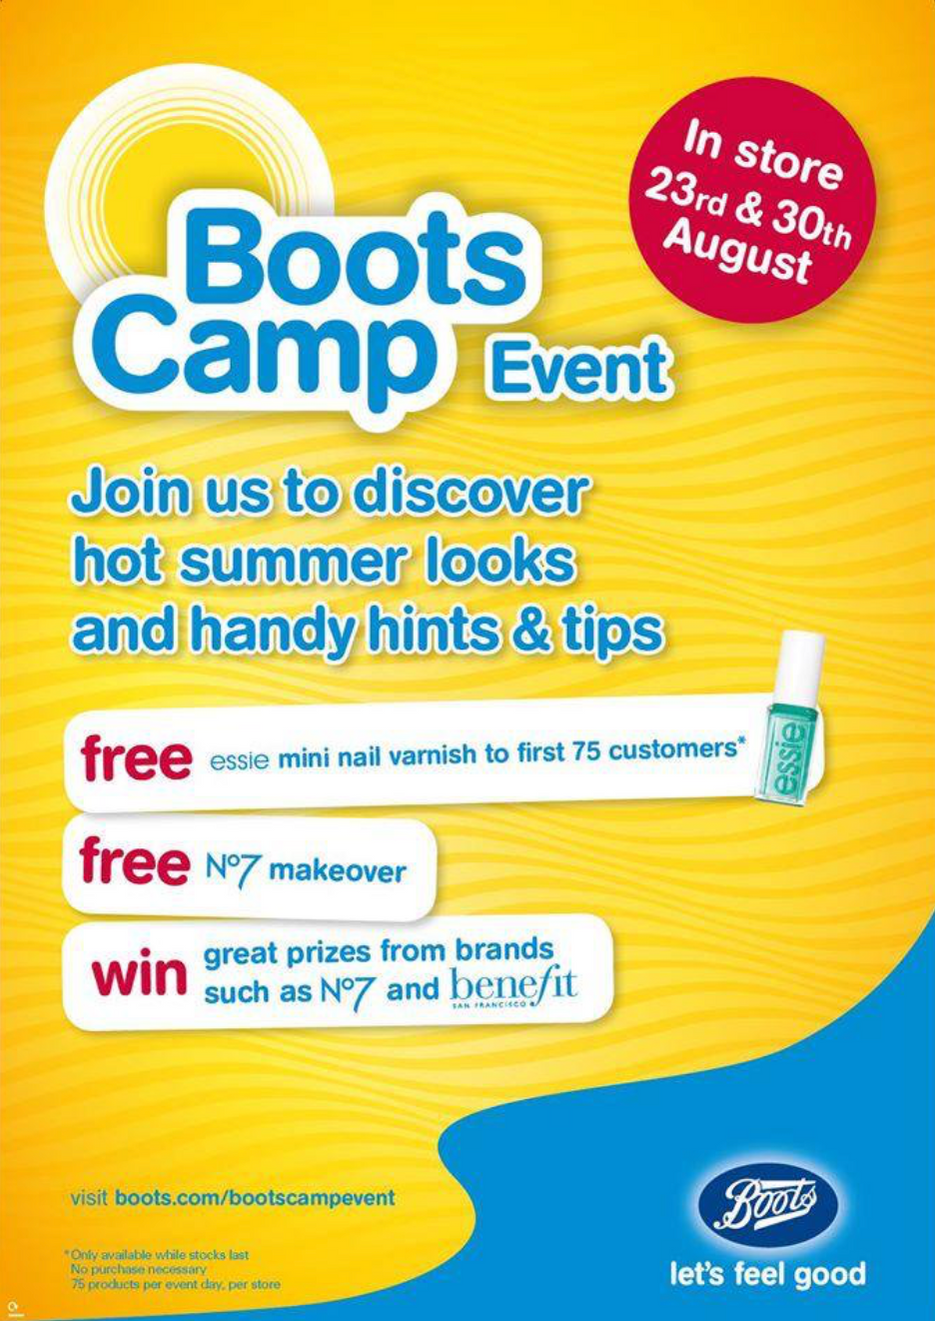 BootsCamp Event